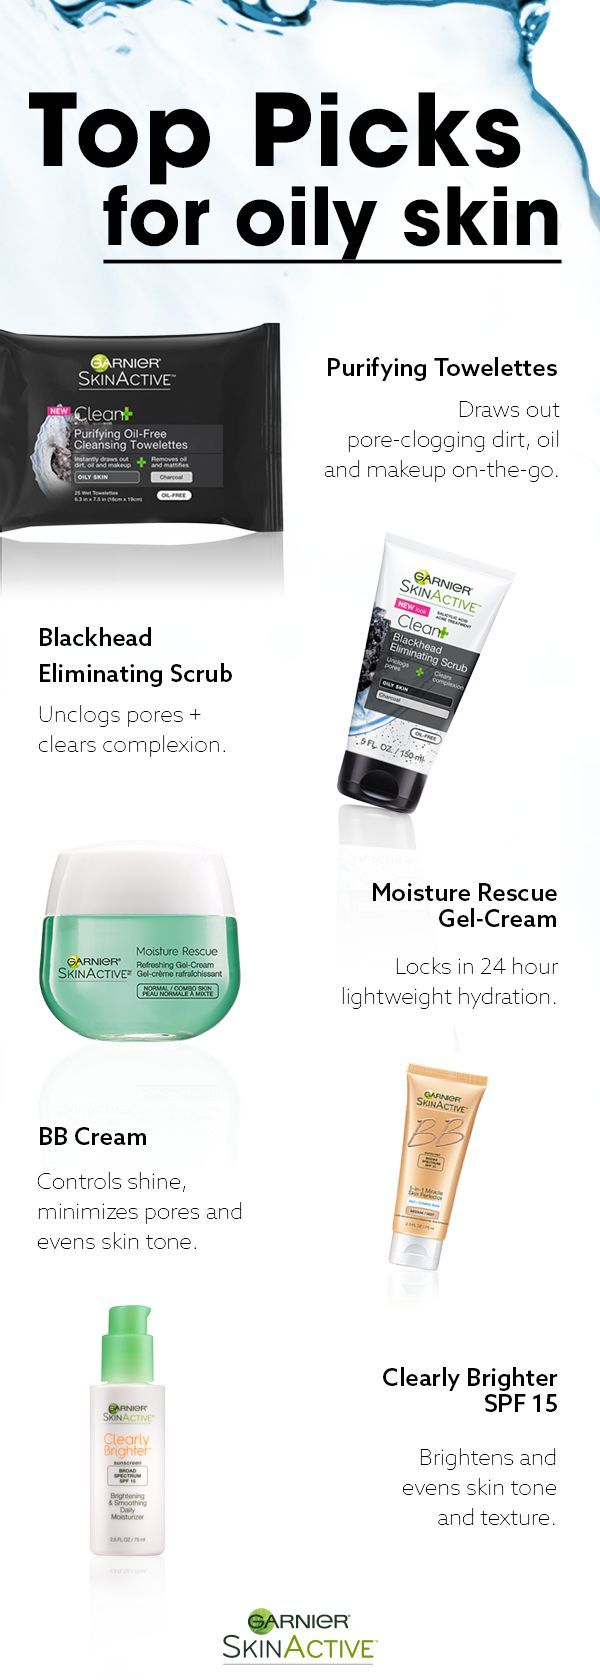 Oily skin has specific needs. To look and feel its best, oily skin needs lightweight, oil-free cleansers and moisturizers. Discover our top picks of Garnier SkinActive products to give you shine-free, healthy-looking skin every day.